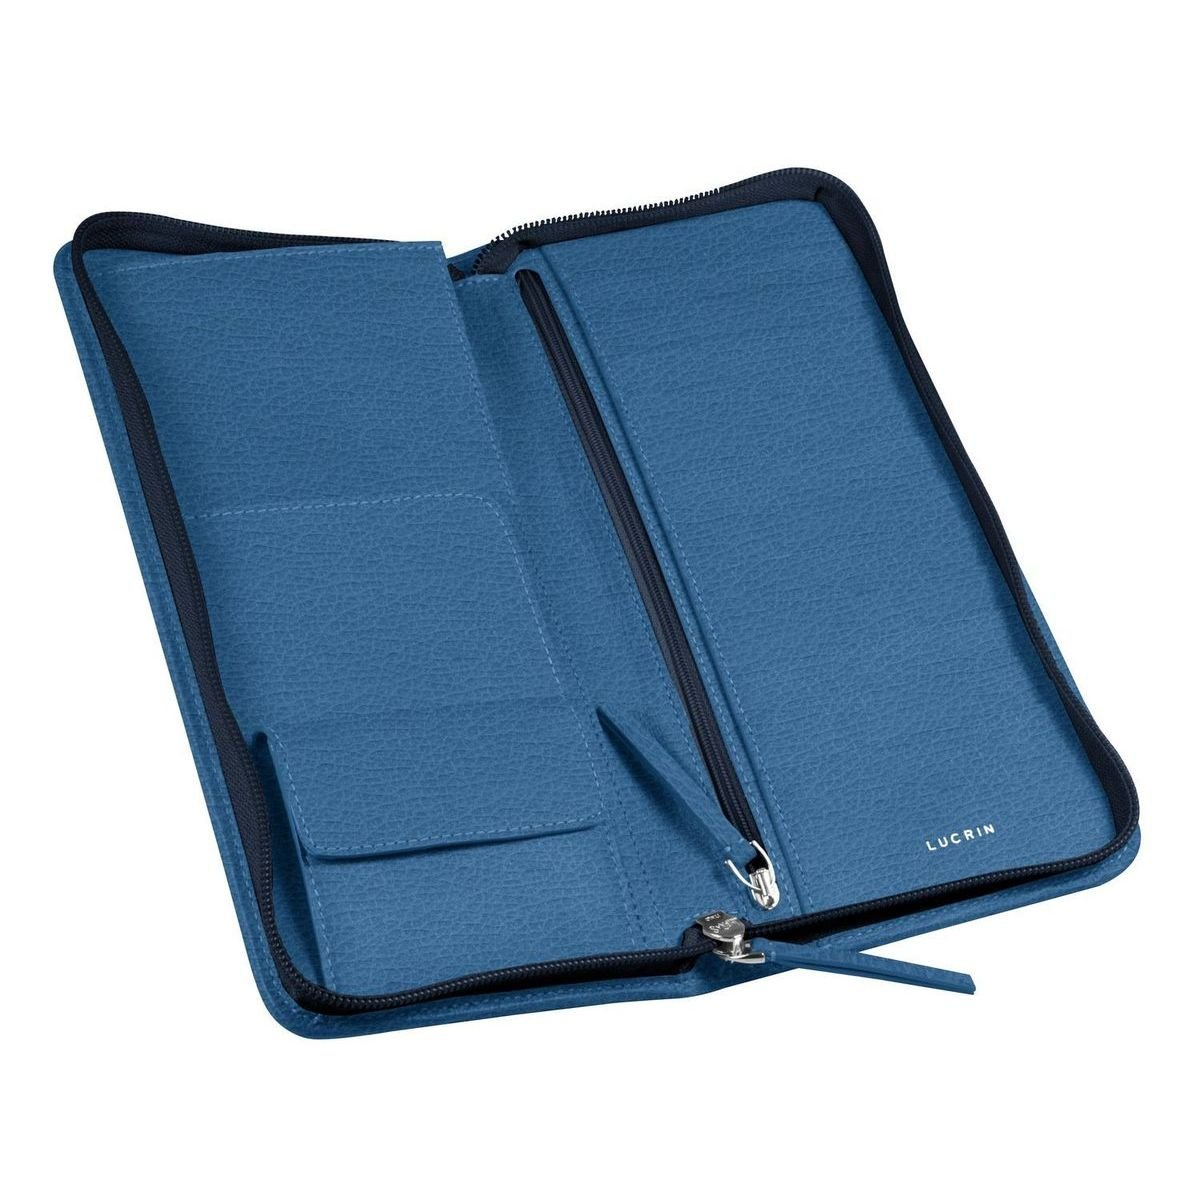 Lucrin - Deluxe travel wallet - Royal Blue - Granulated Leather